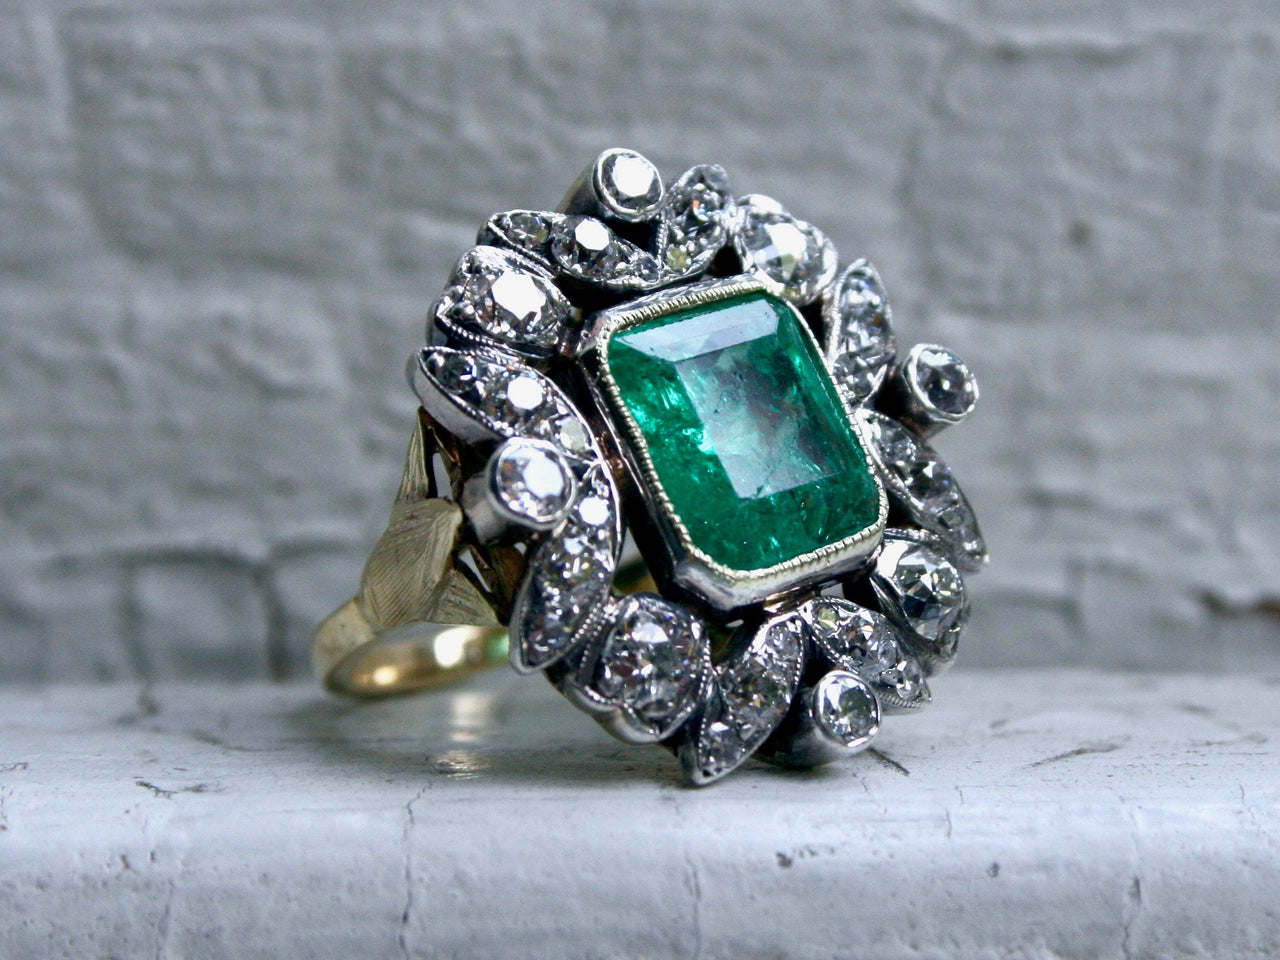 Stunning Victorian Antique 18K Yellow Gold/ Silver Diamond and Emerald Ring - 6.60ct.